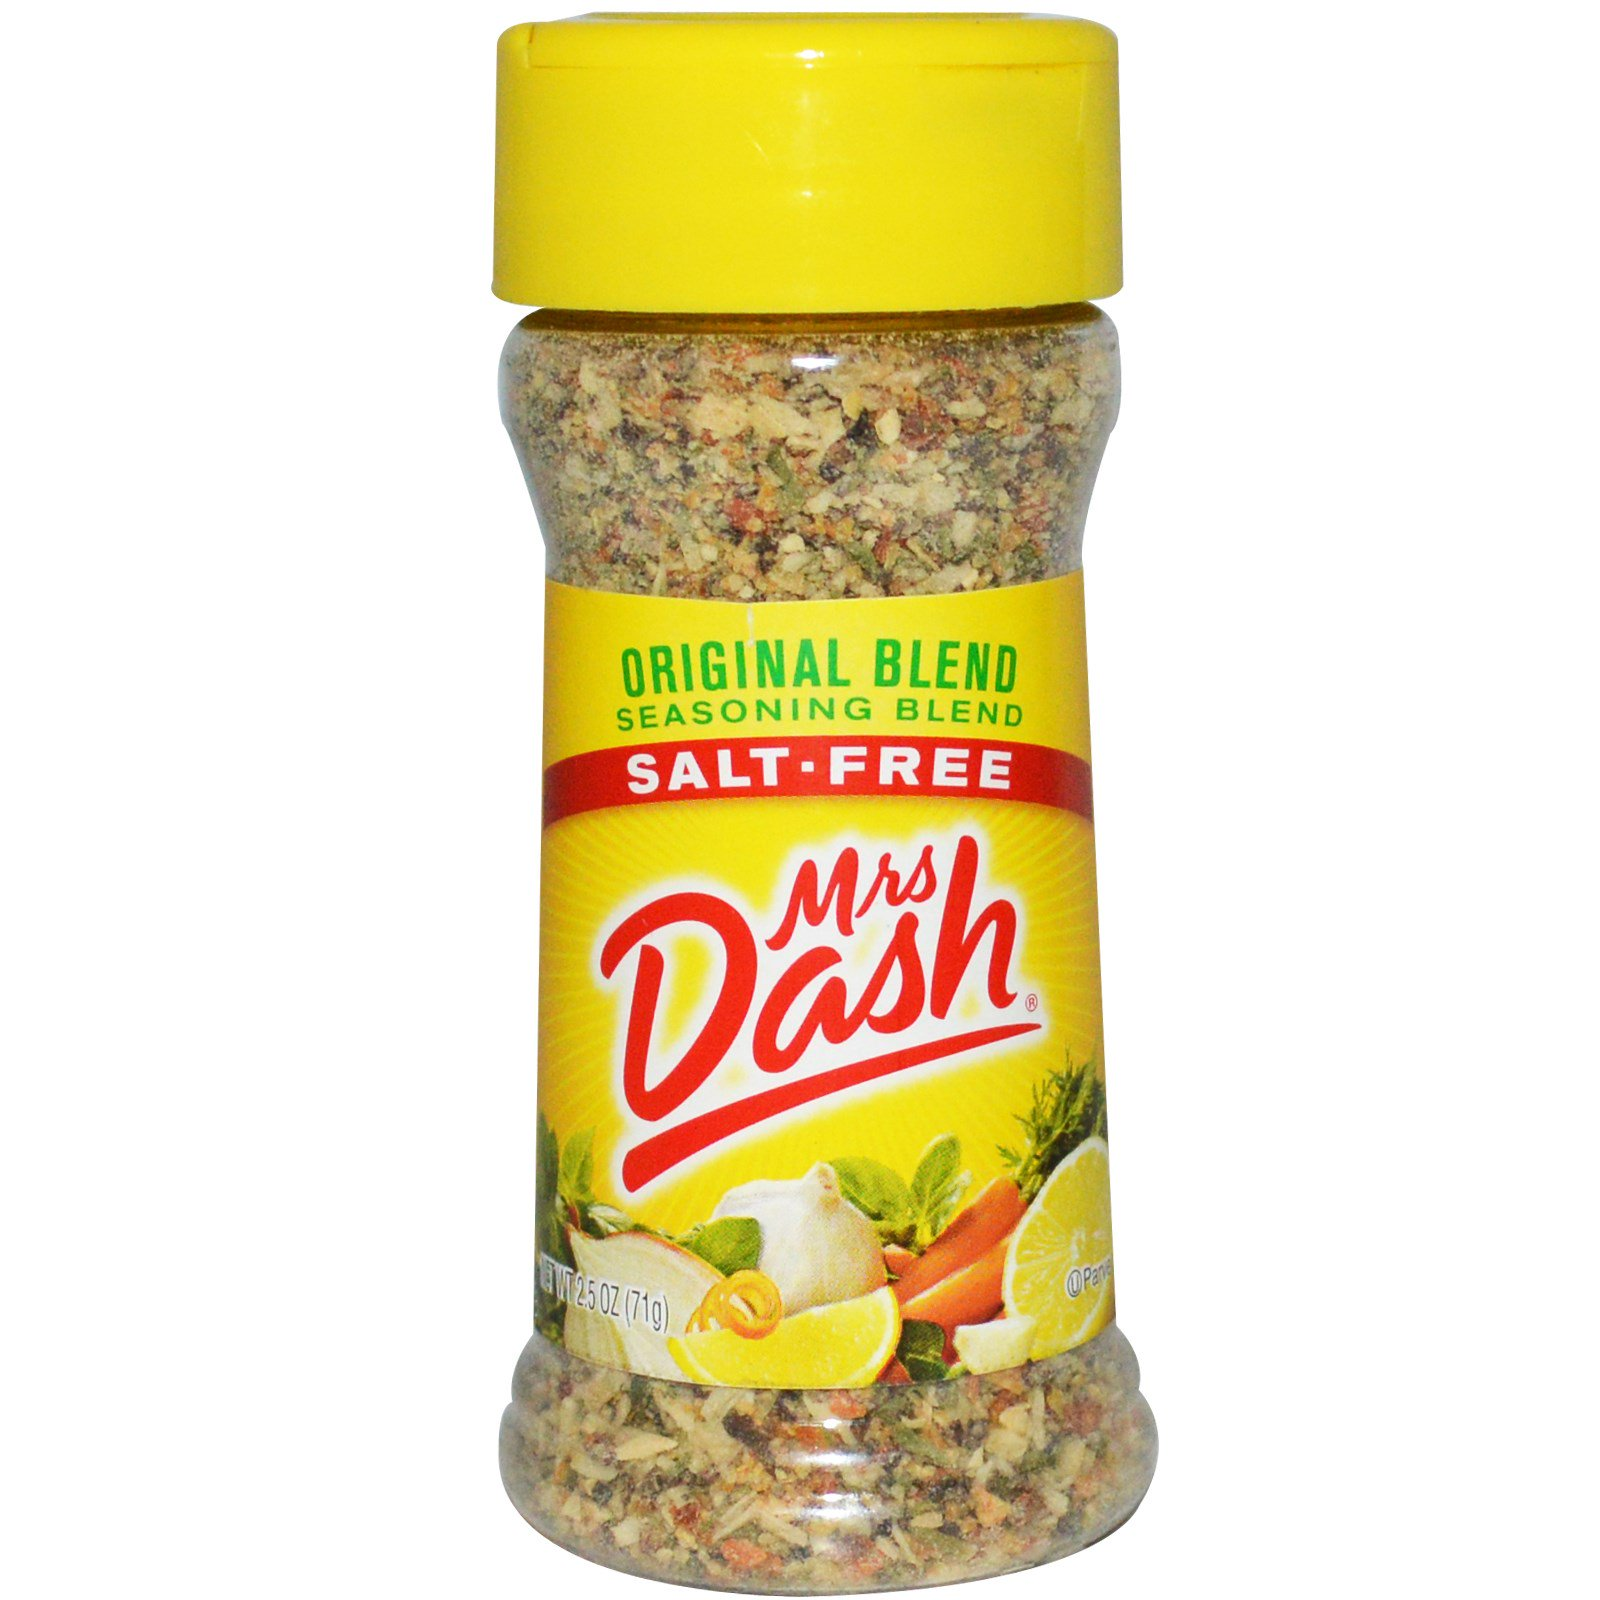 Mrs dash seasoning recipe